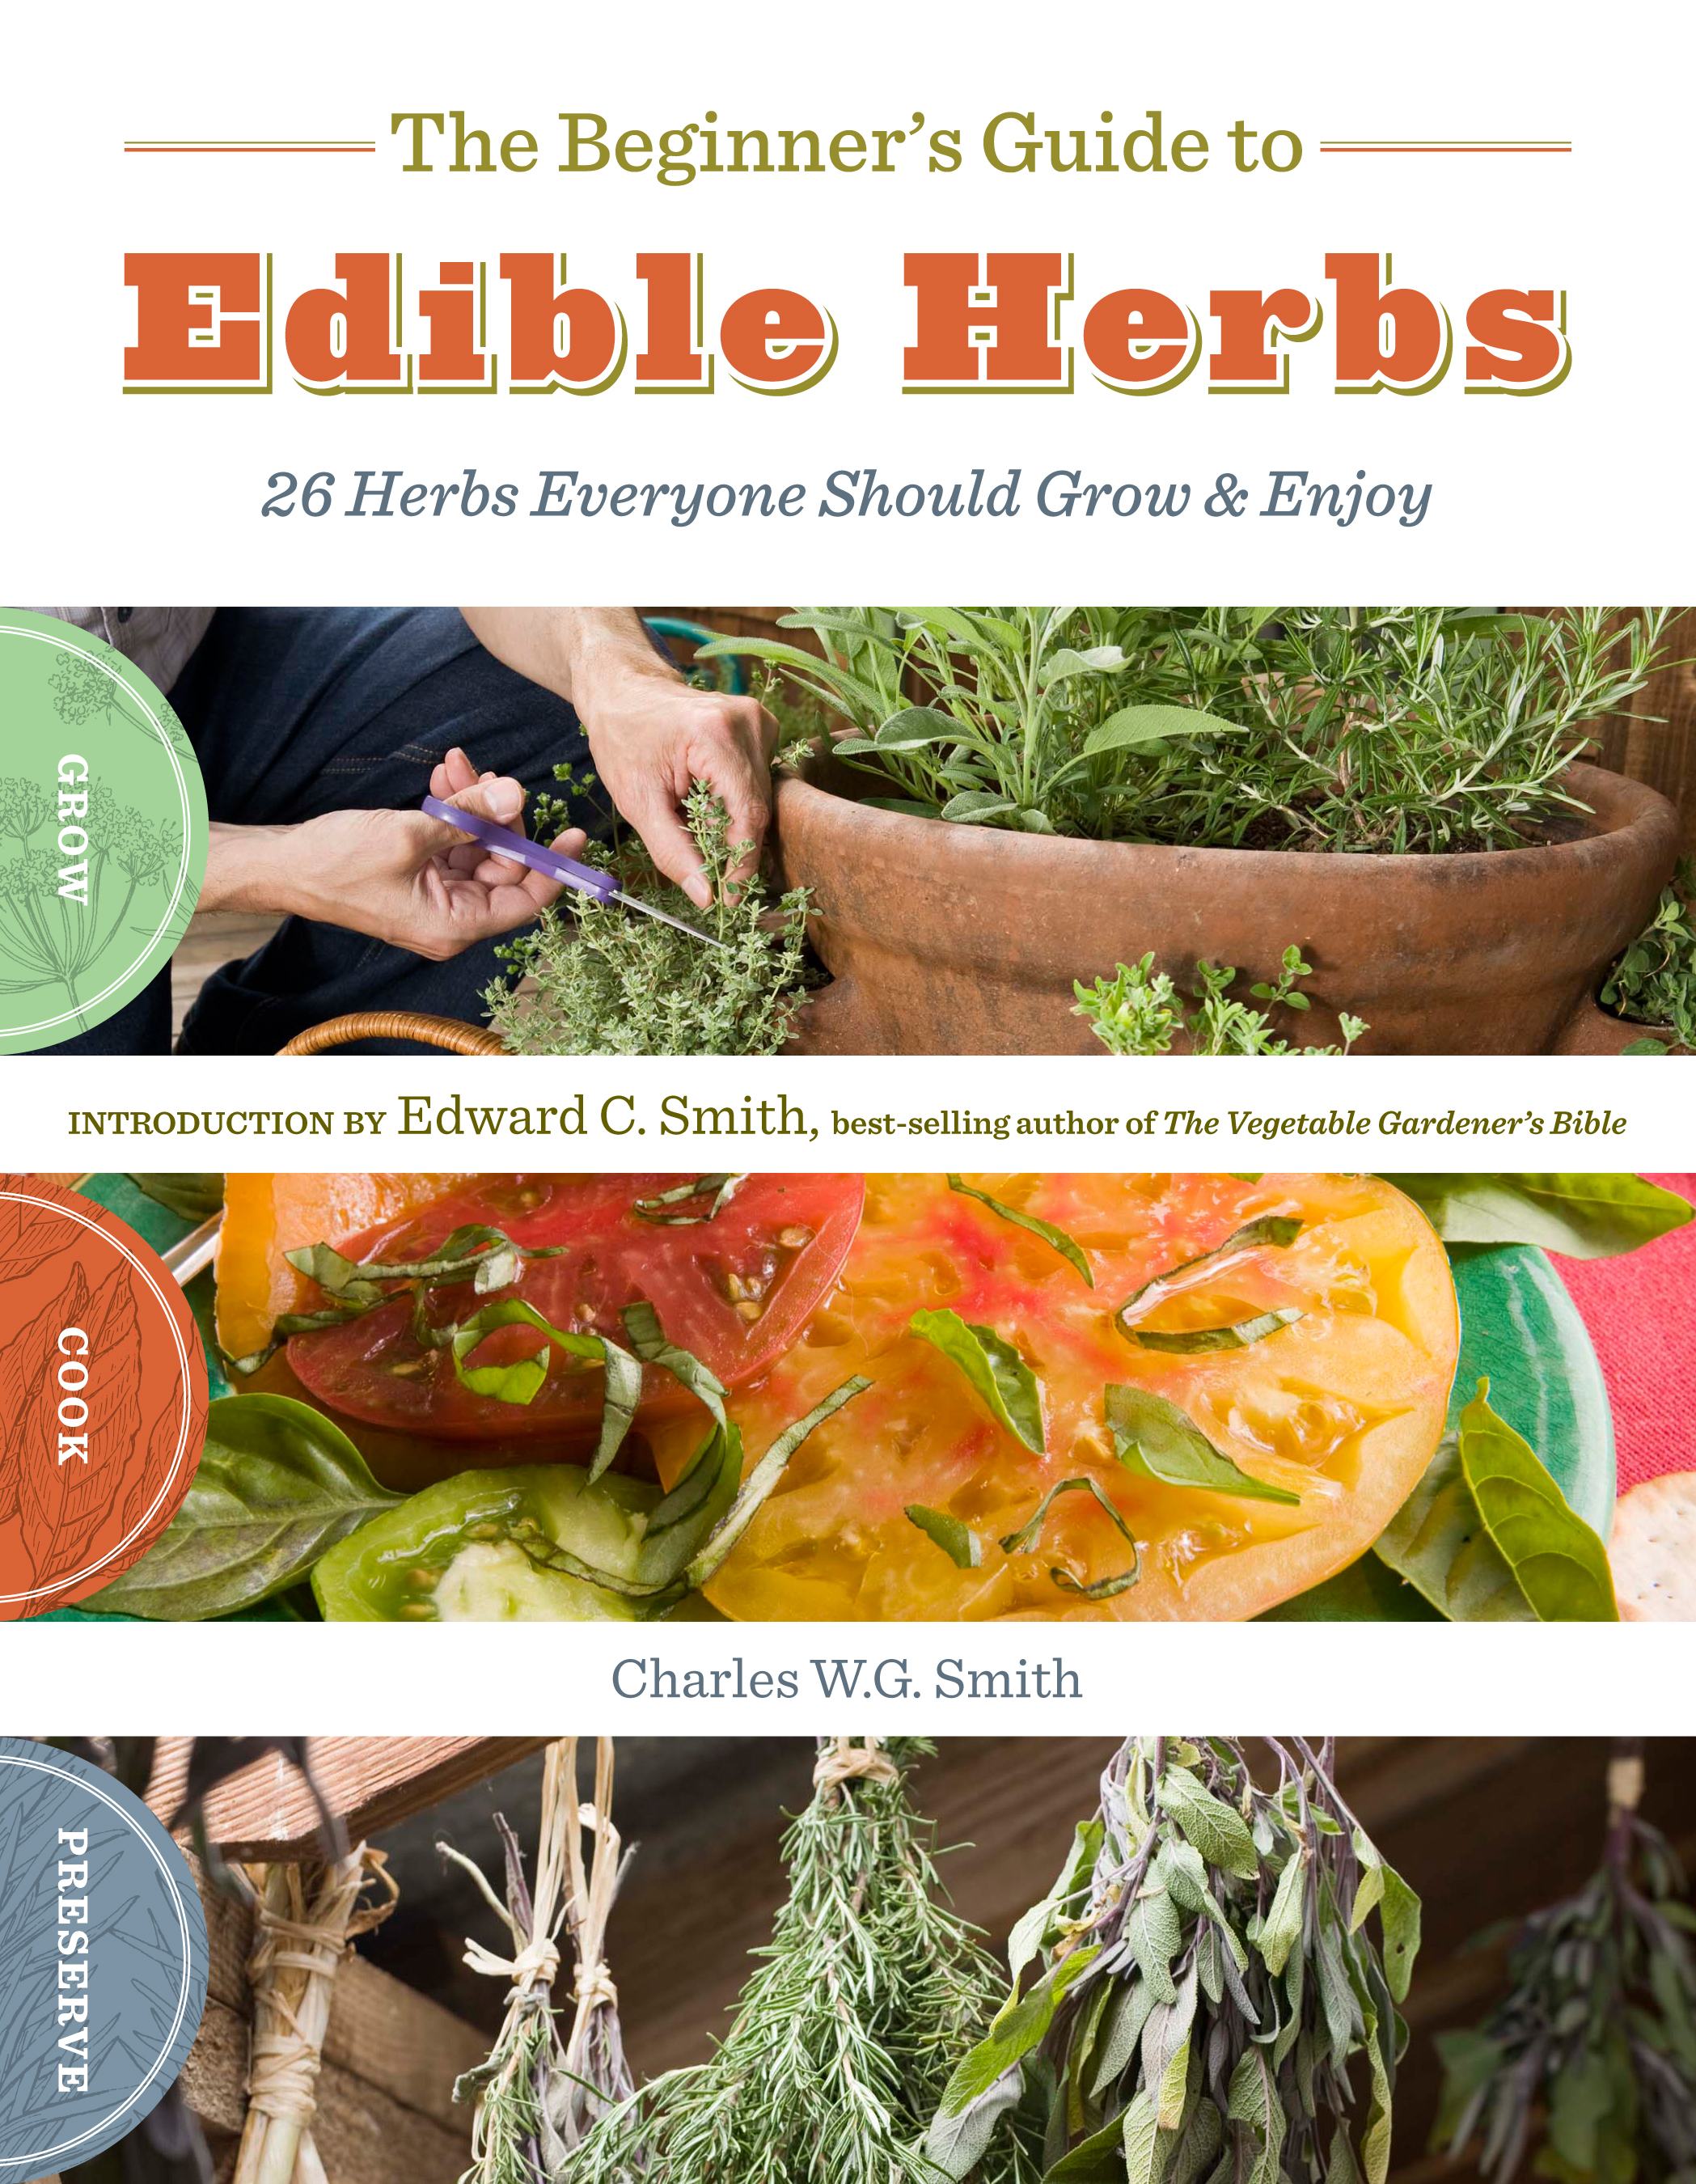 The Beginner's Guide to Edible Herbs 26 Herbs Everyone Should Grow and Enjoy - Charles W. G. Smith